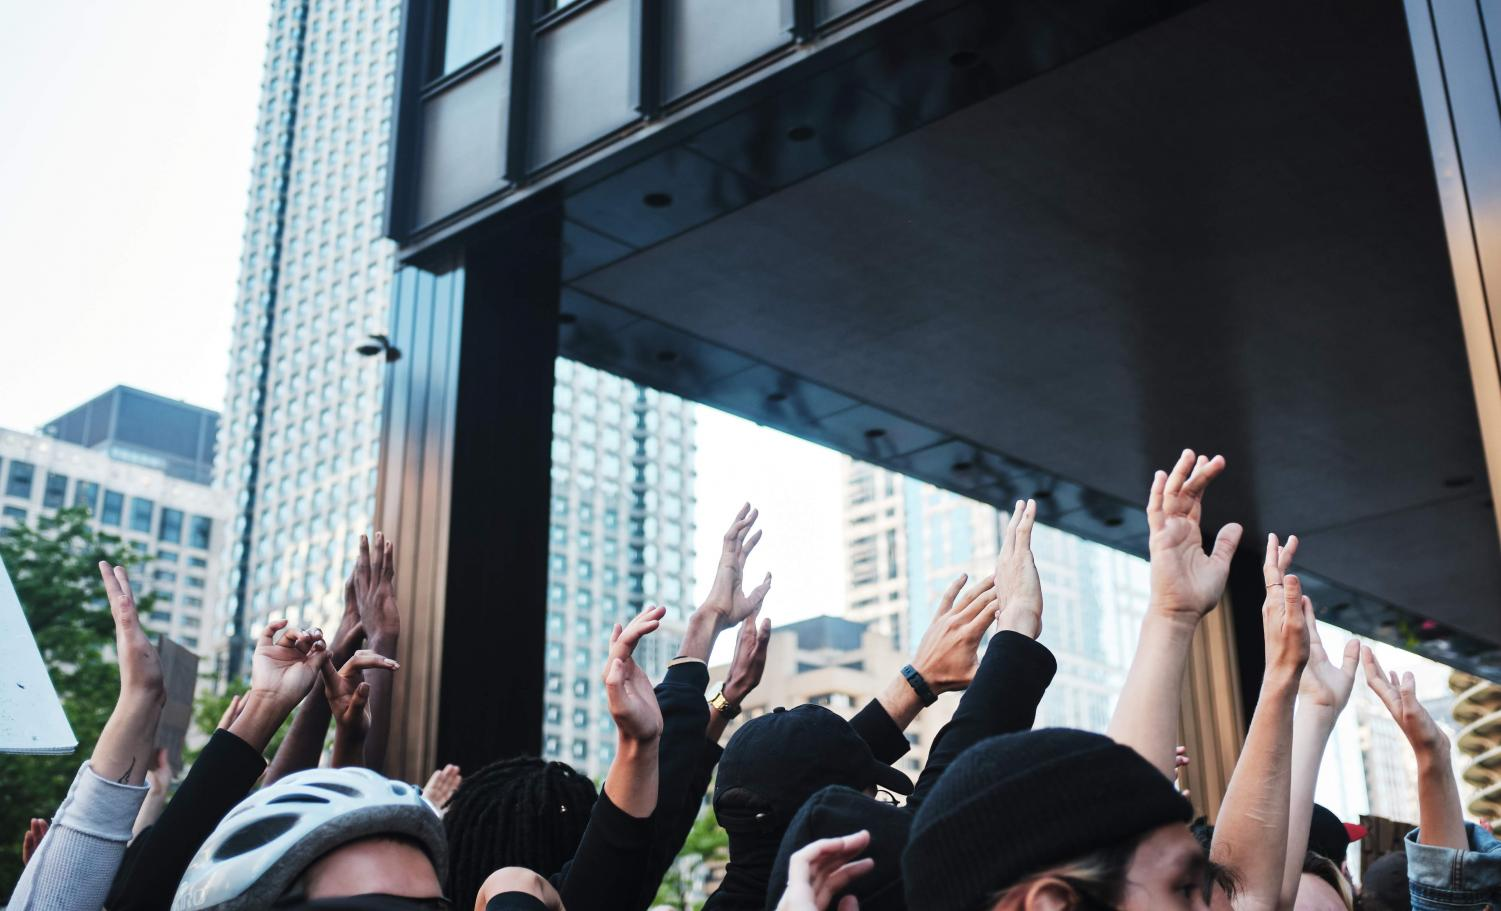 Gallery+%7C+Chicago+protests+for+George+Floyd+downtown